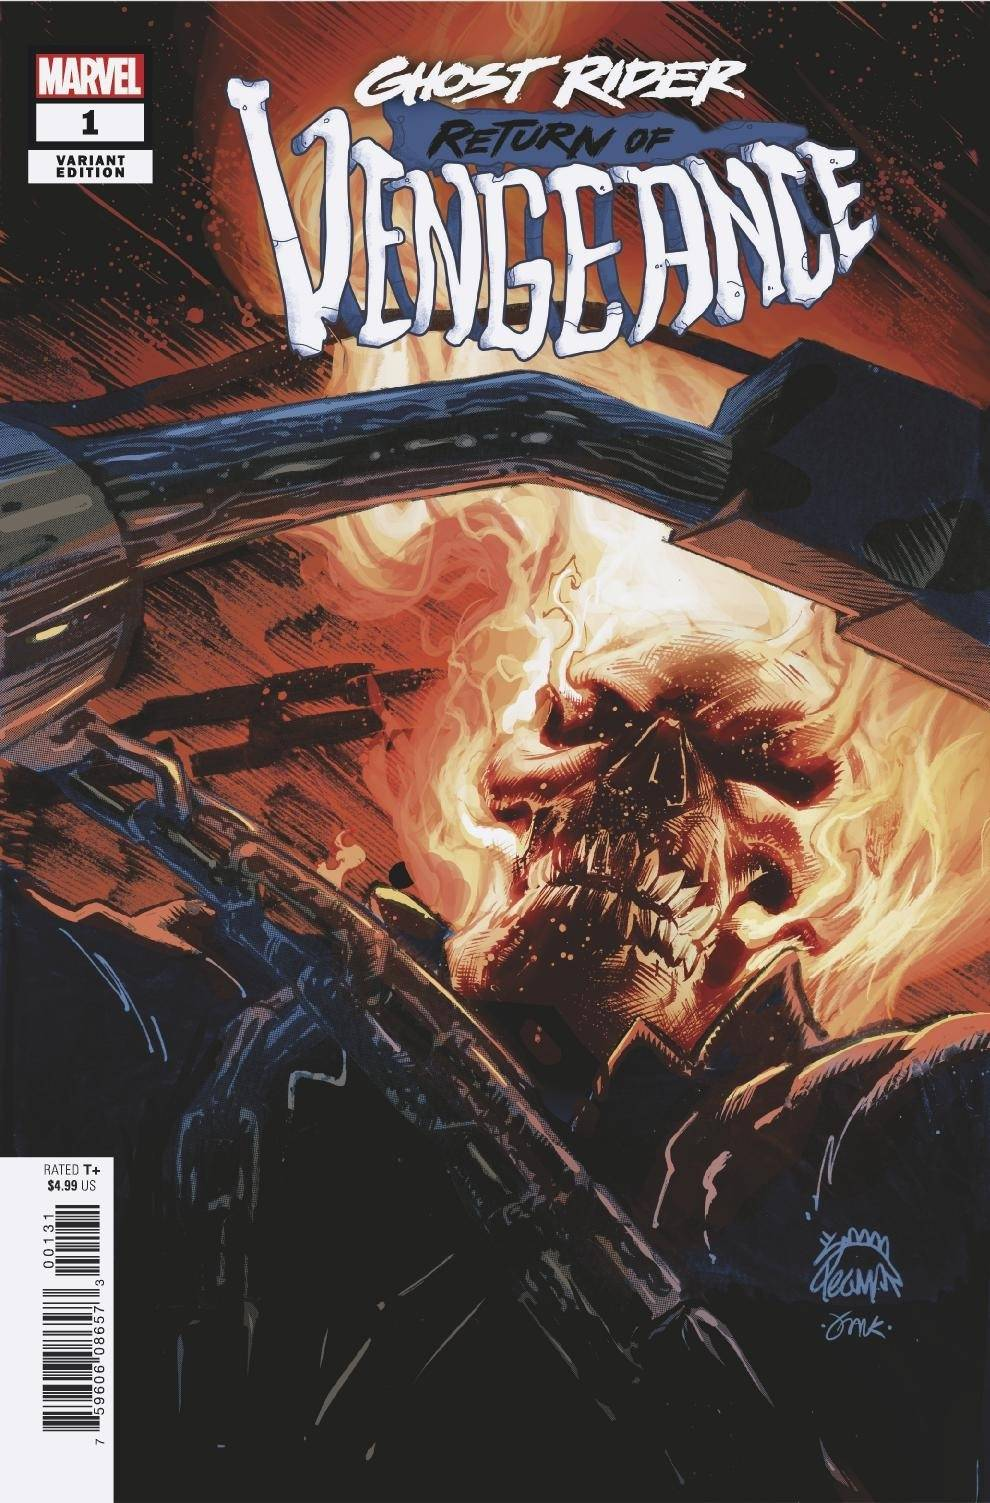 12/30/2020 GHOST RIDER ANNUAL #1 STEGMAN VAR (NEW RELEASE 12/30/2020 RETITLED TO GHOST RIDER: RETURN OF VENGEANCE)